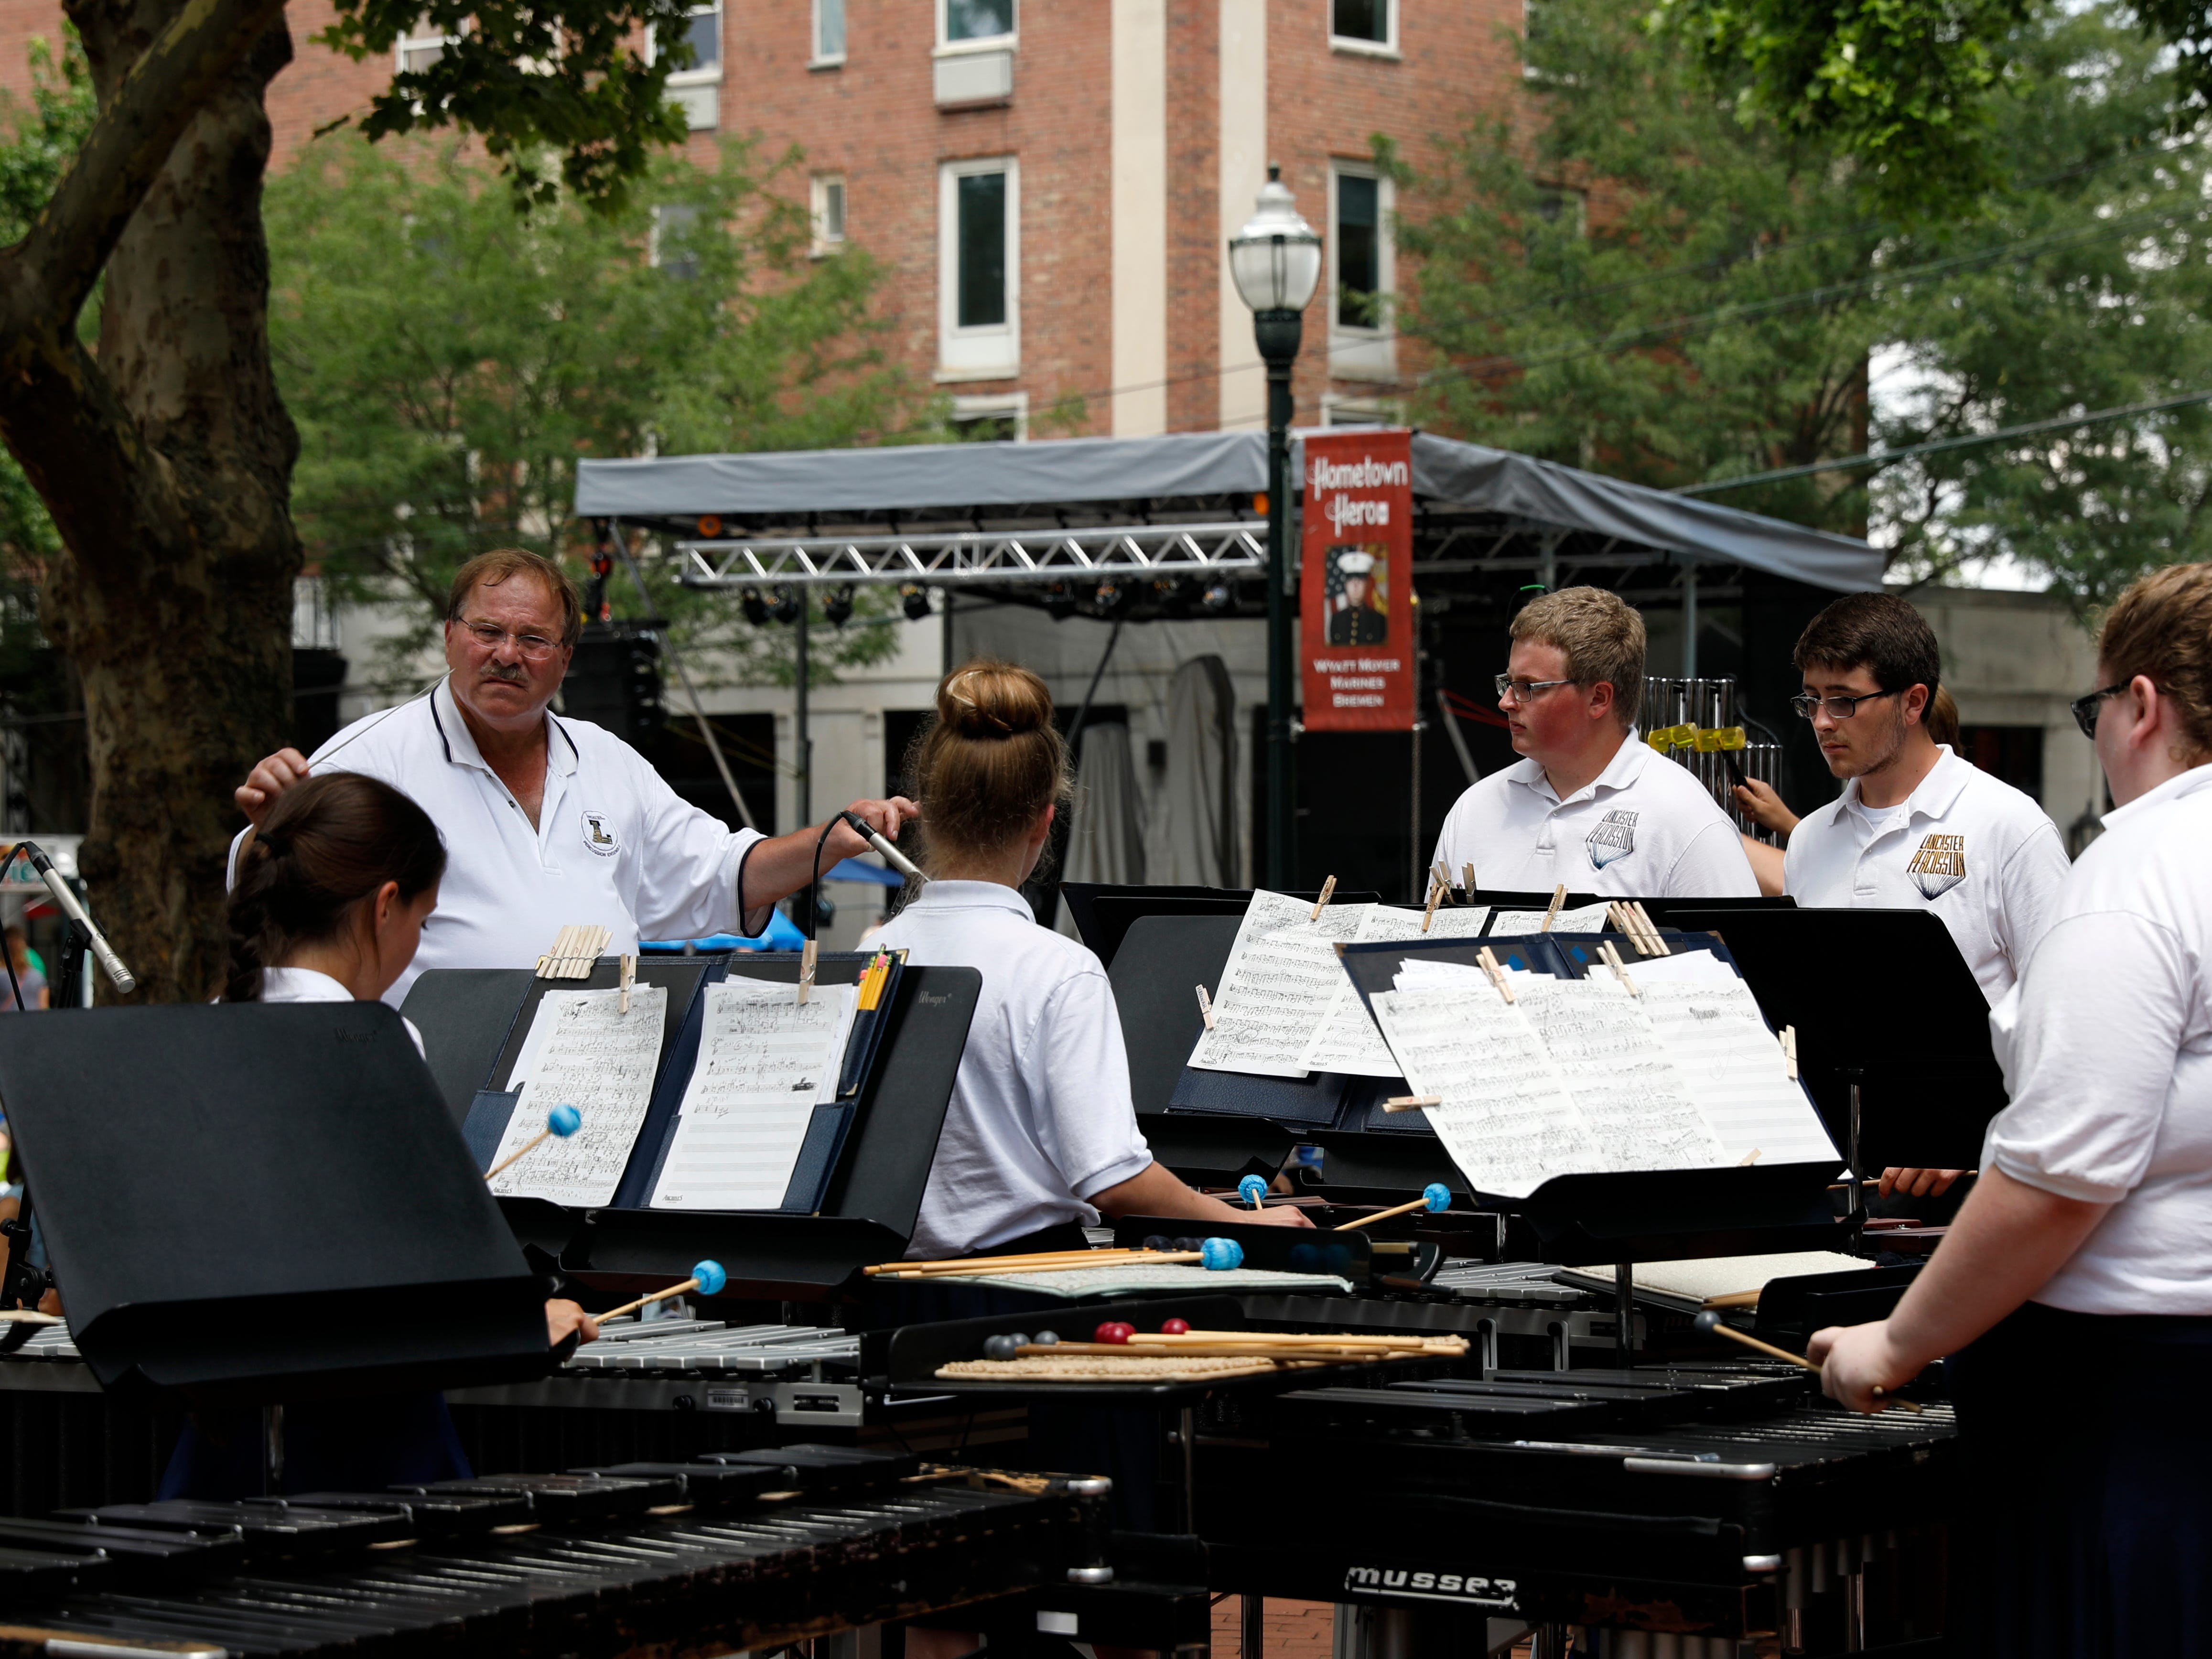 Bruce Gerken leads the Lancaster High School Percussion Ensemble Wednesday, July 25, 2018, during a midday Lancaster Festival concert in downtown Lancaster.